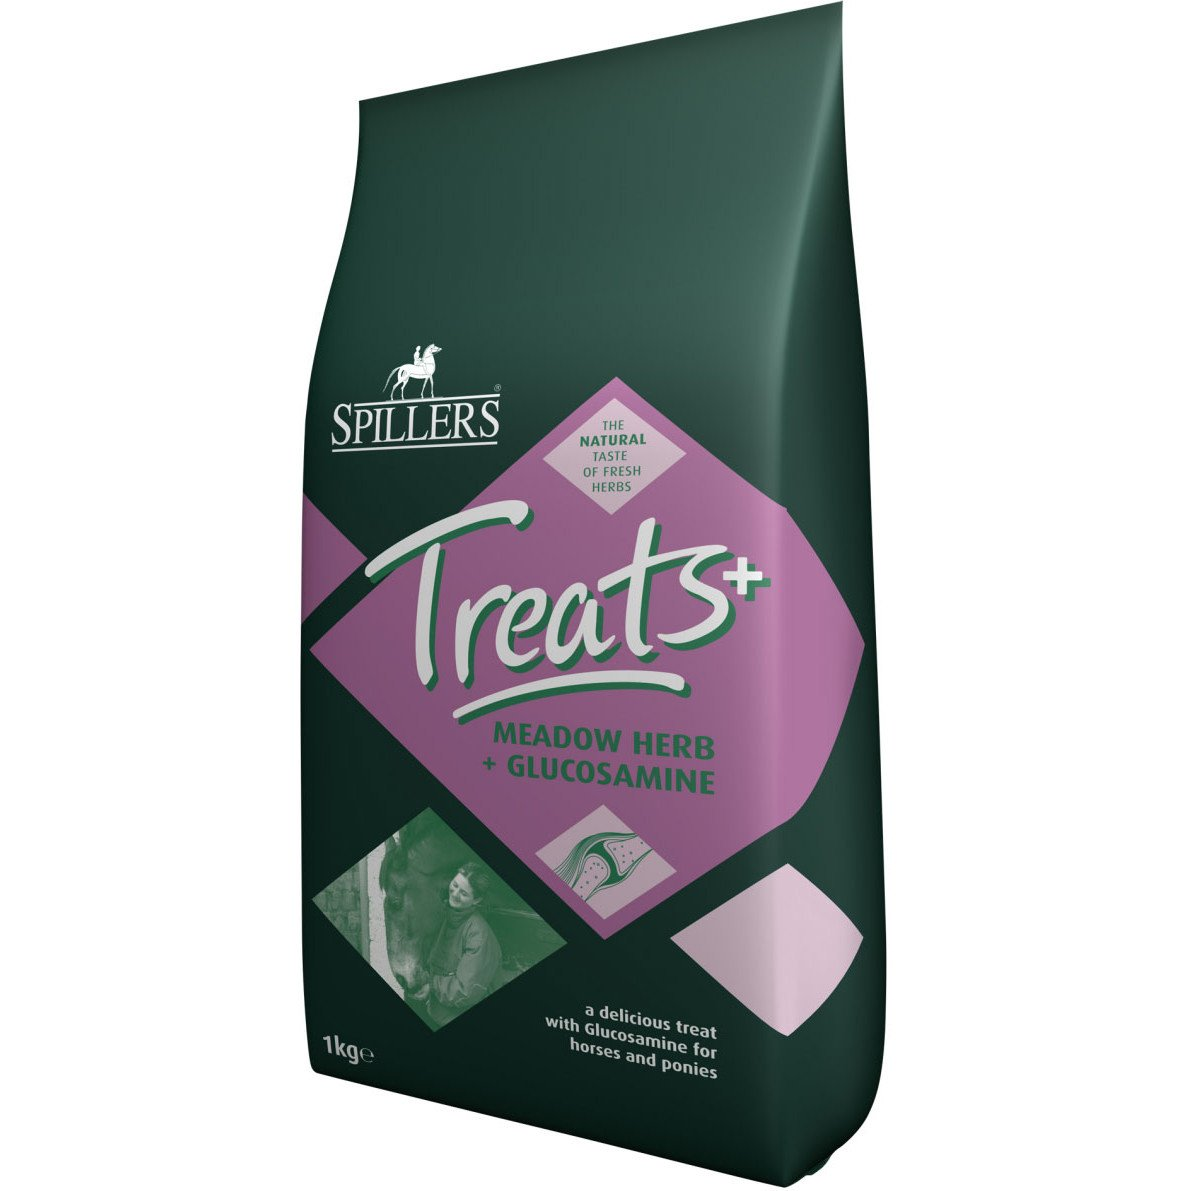 Spillers Meadowherb Treats with Glucosamine Horse Treats 1kg Brown